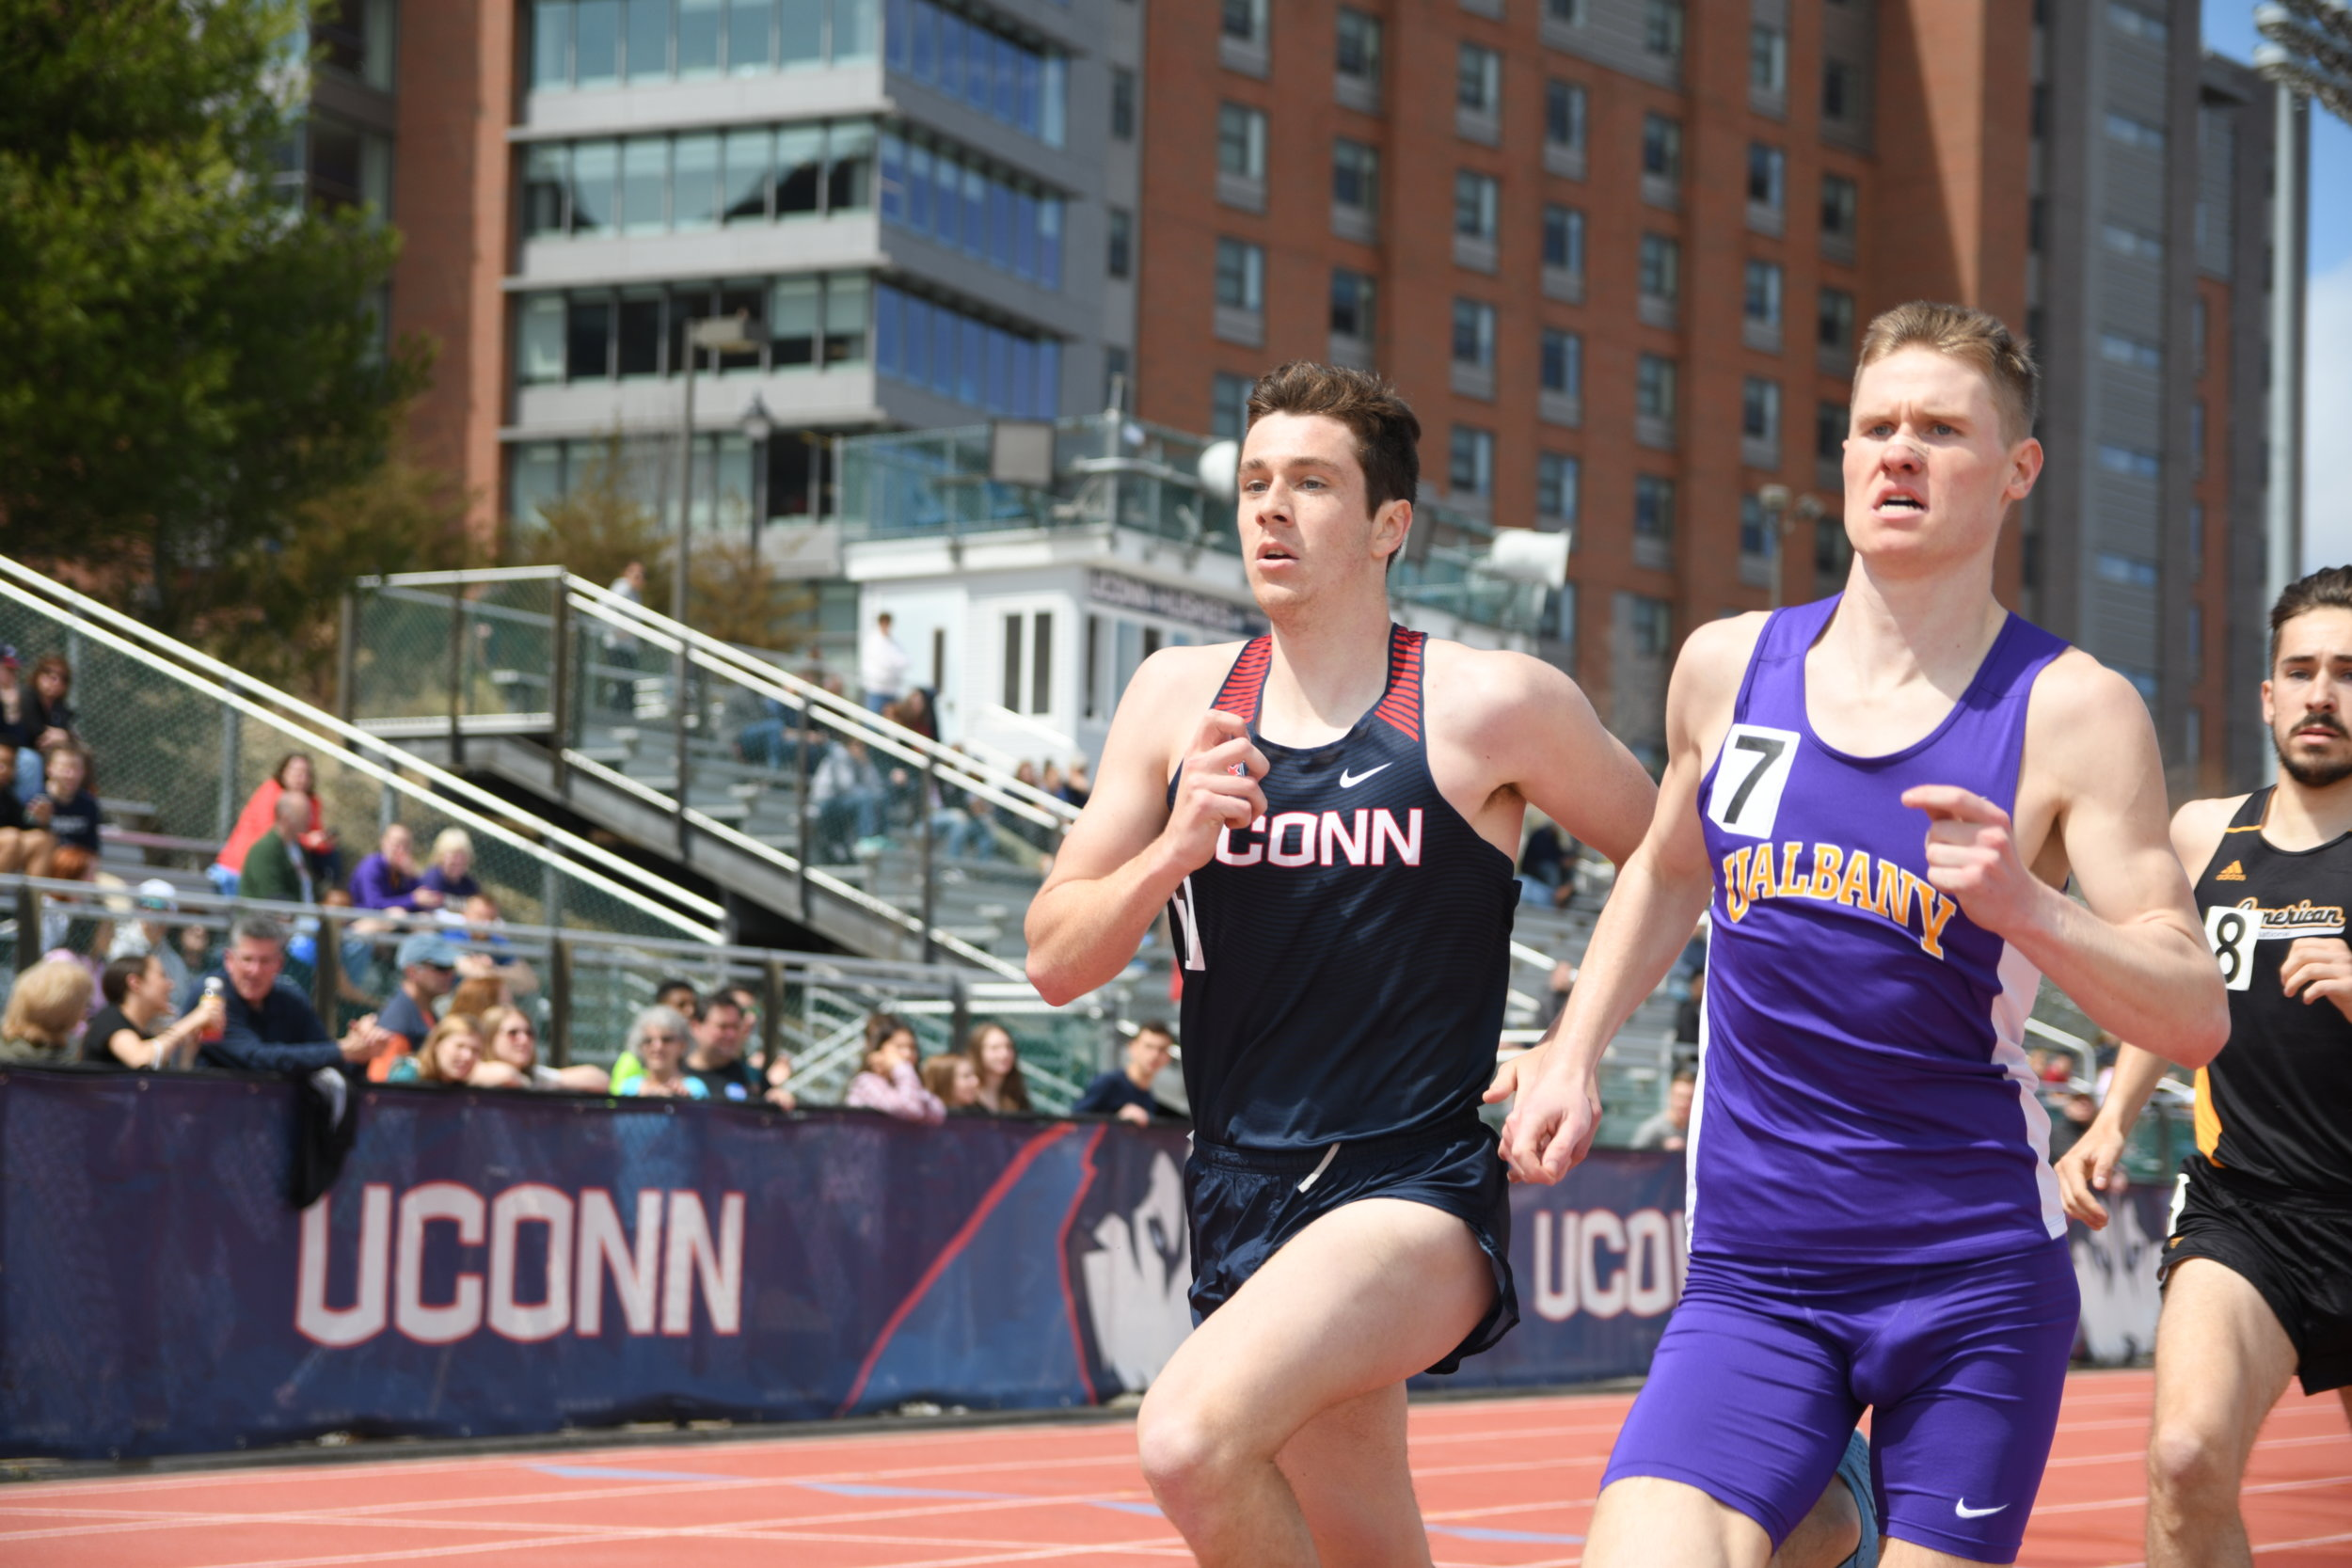 Several Huskies turned in solid performances despite some uncooperative weather throughout the competition. (Judah Shingleton/The Daily Campus)